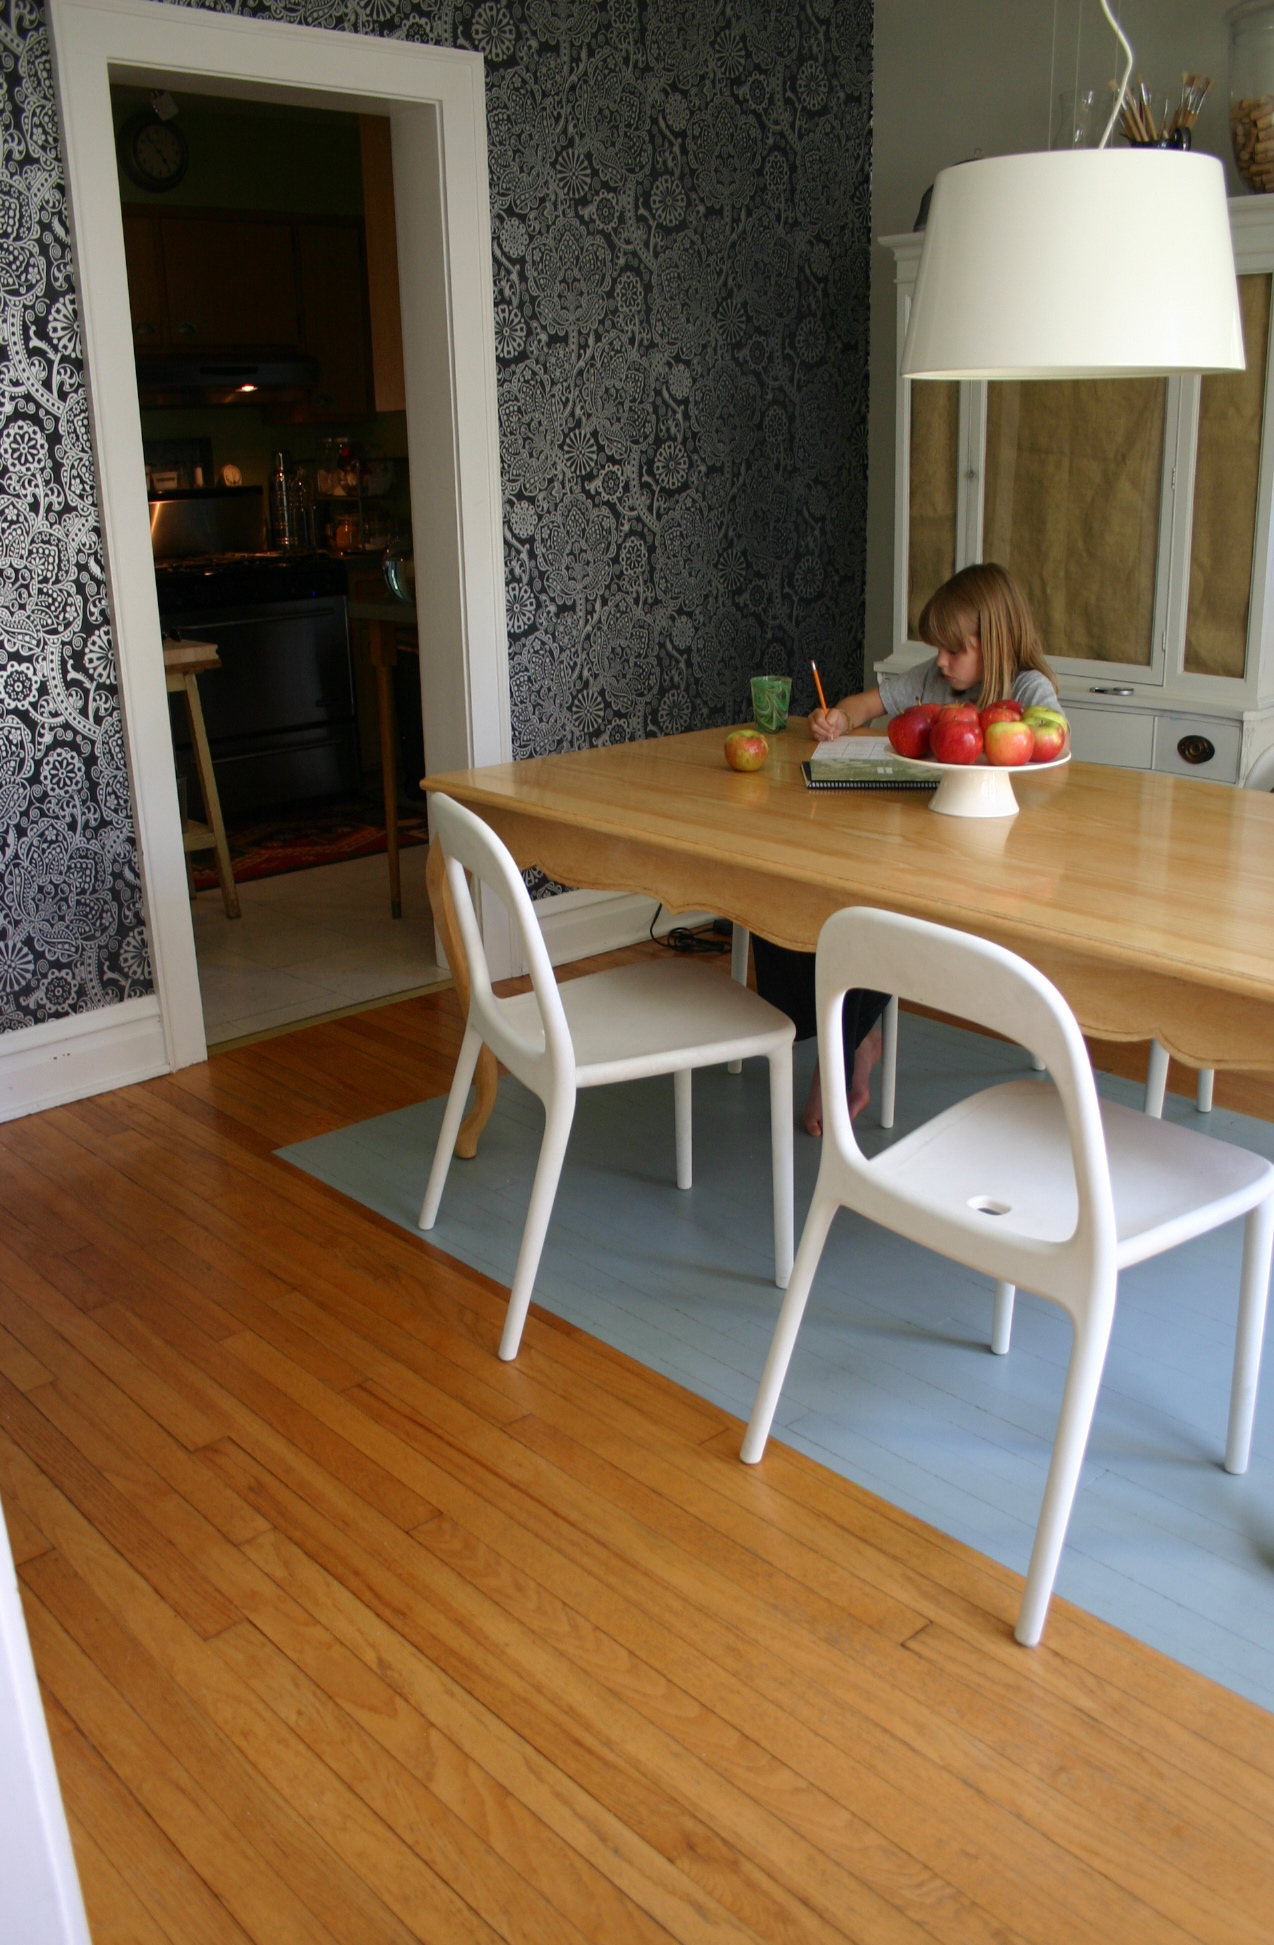 With children in the house a painted dining room floor is the perfect alternative to a rug